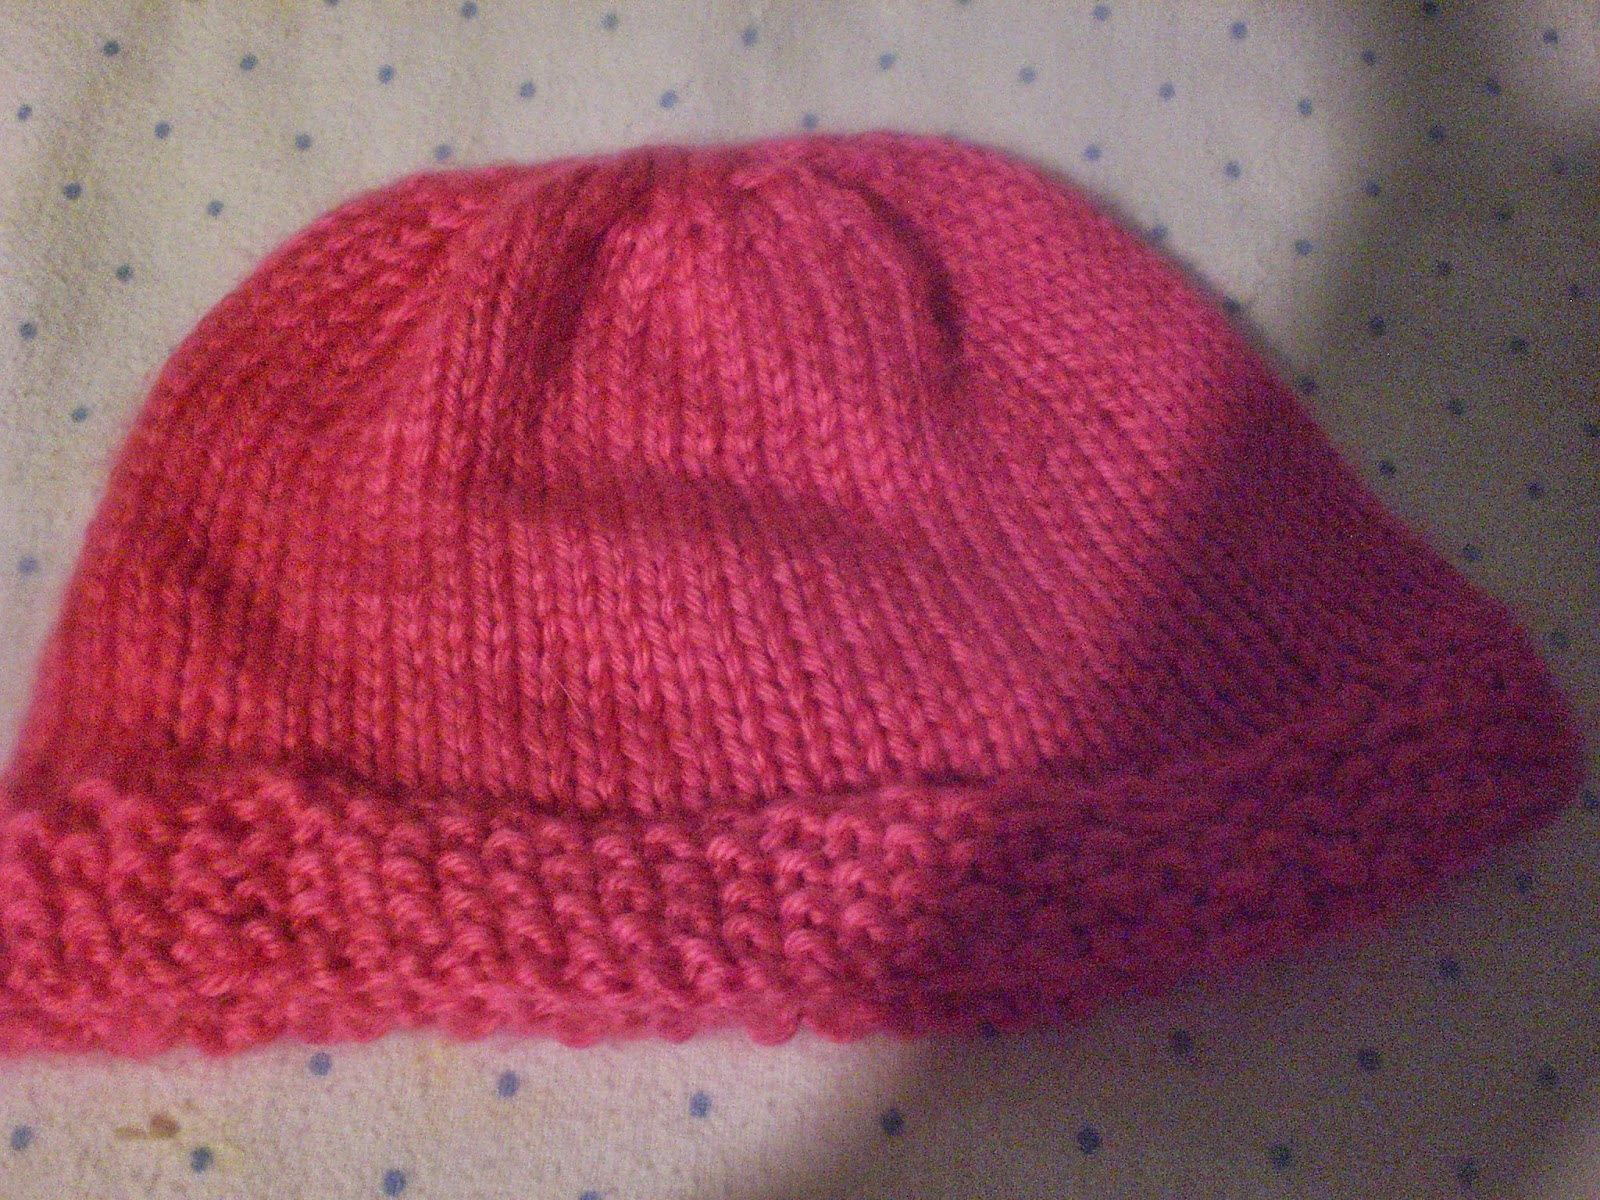 Knit Stitch Baby Hat : Luvsknitting: Seed Stitch Baby Hat in Hot Pink